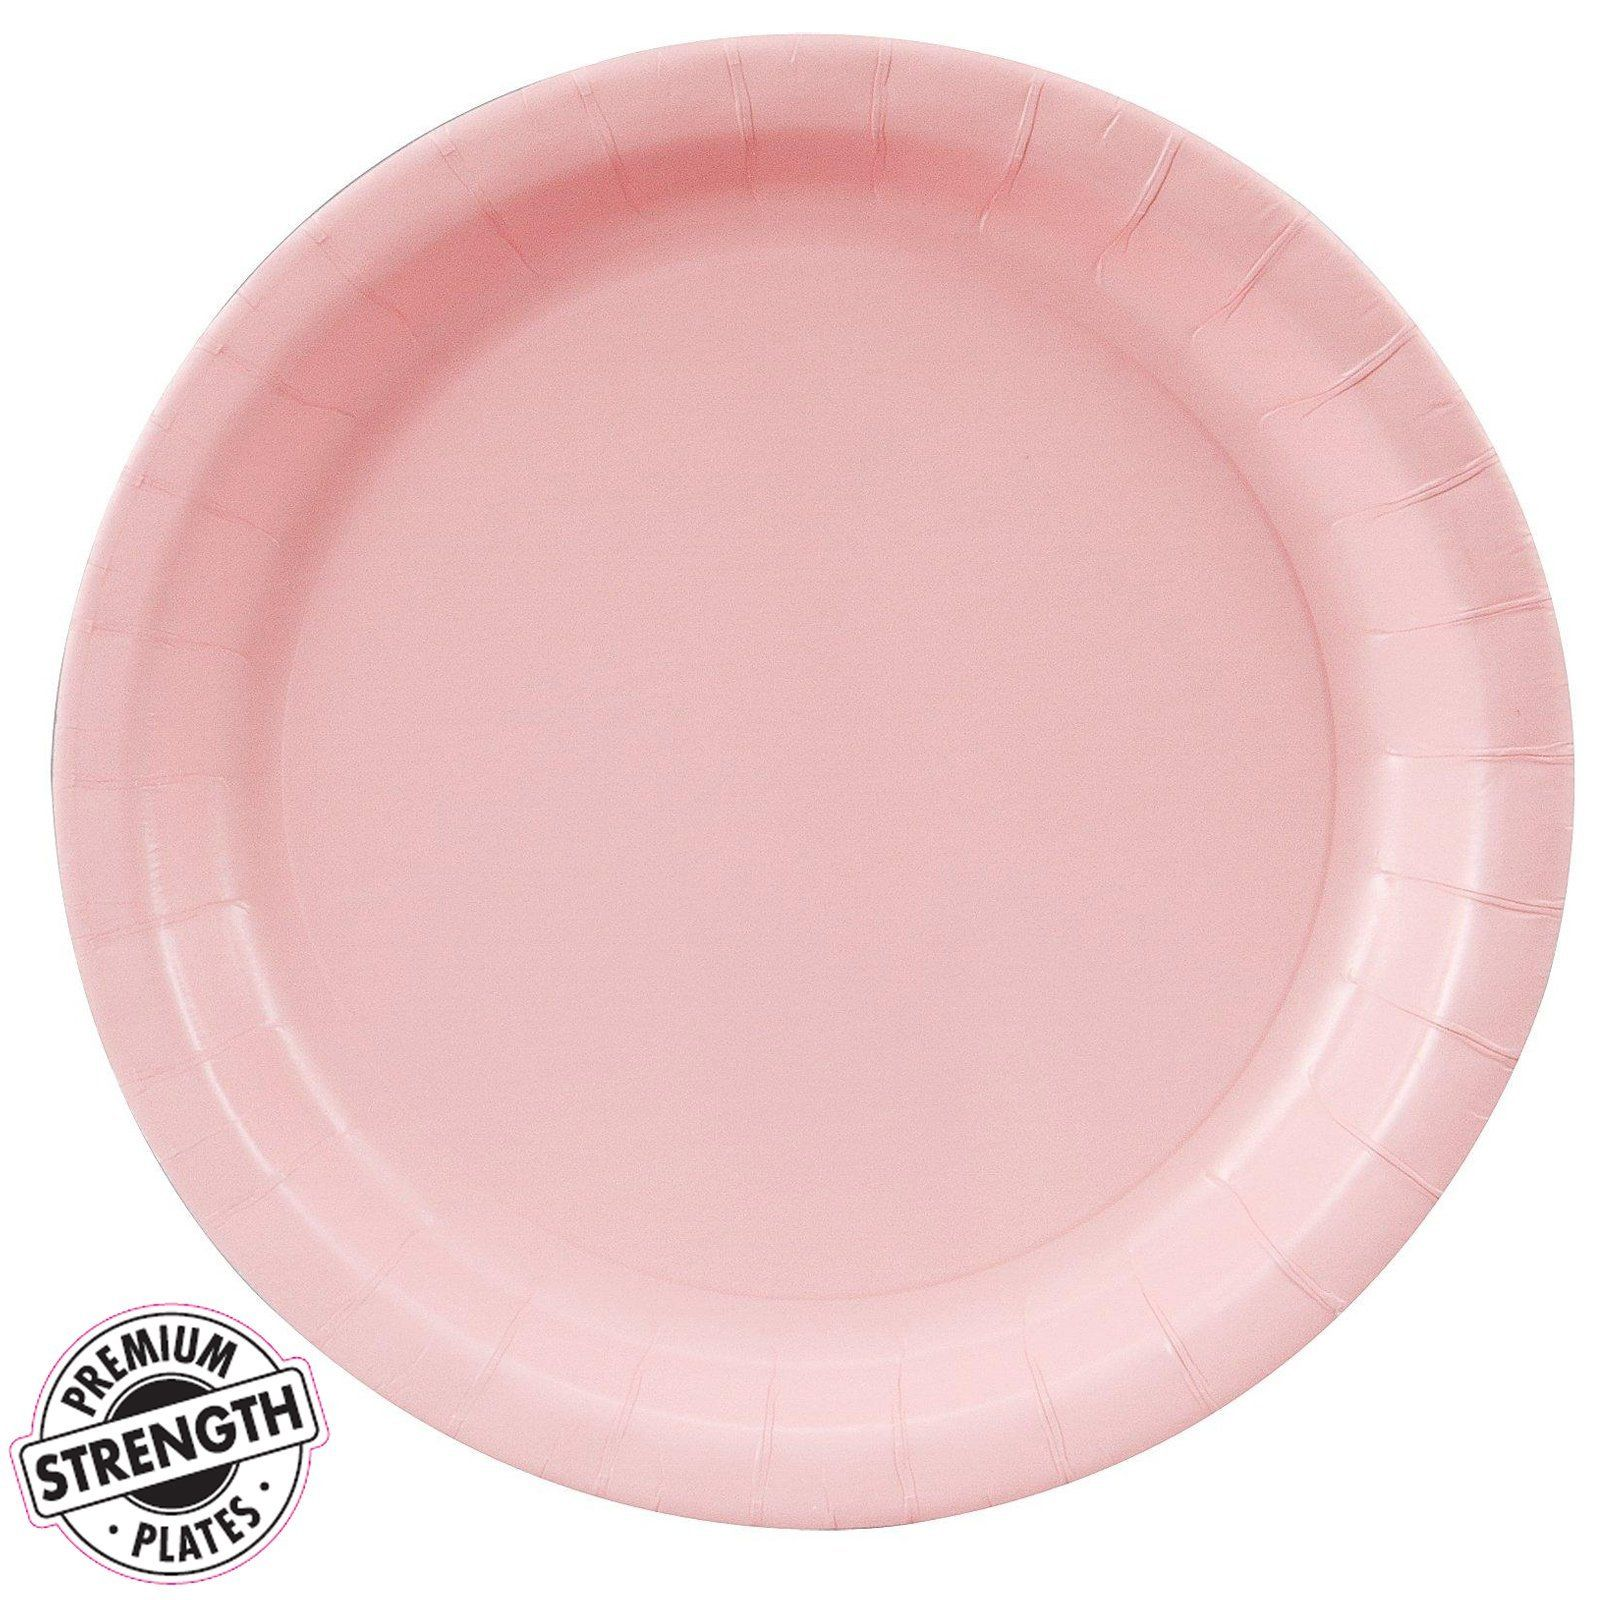 Classic Pink (Light Pink) Dinner Plates  sc 1 st  Pinterest : pink dinner plates - pezcame.com